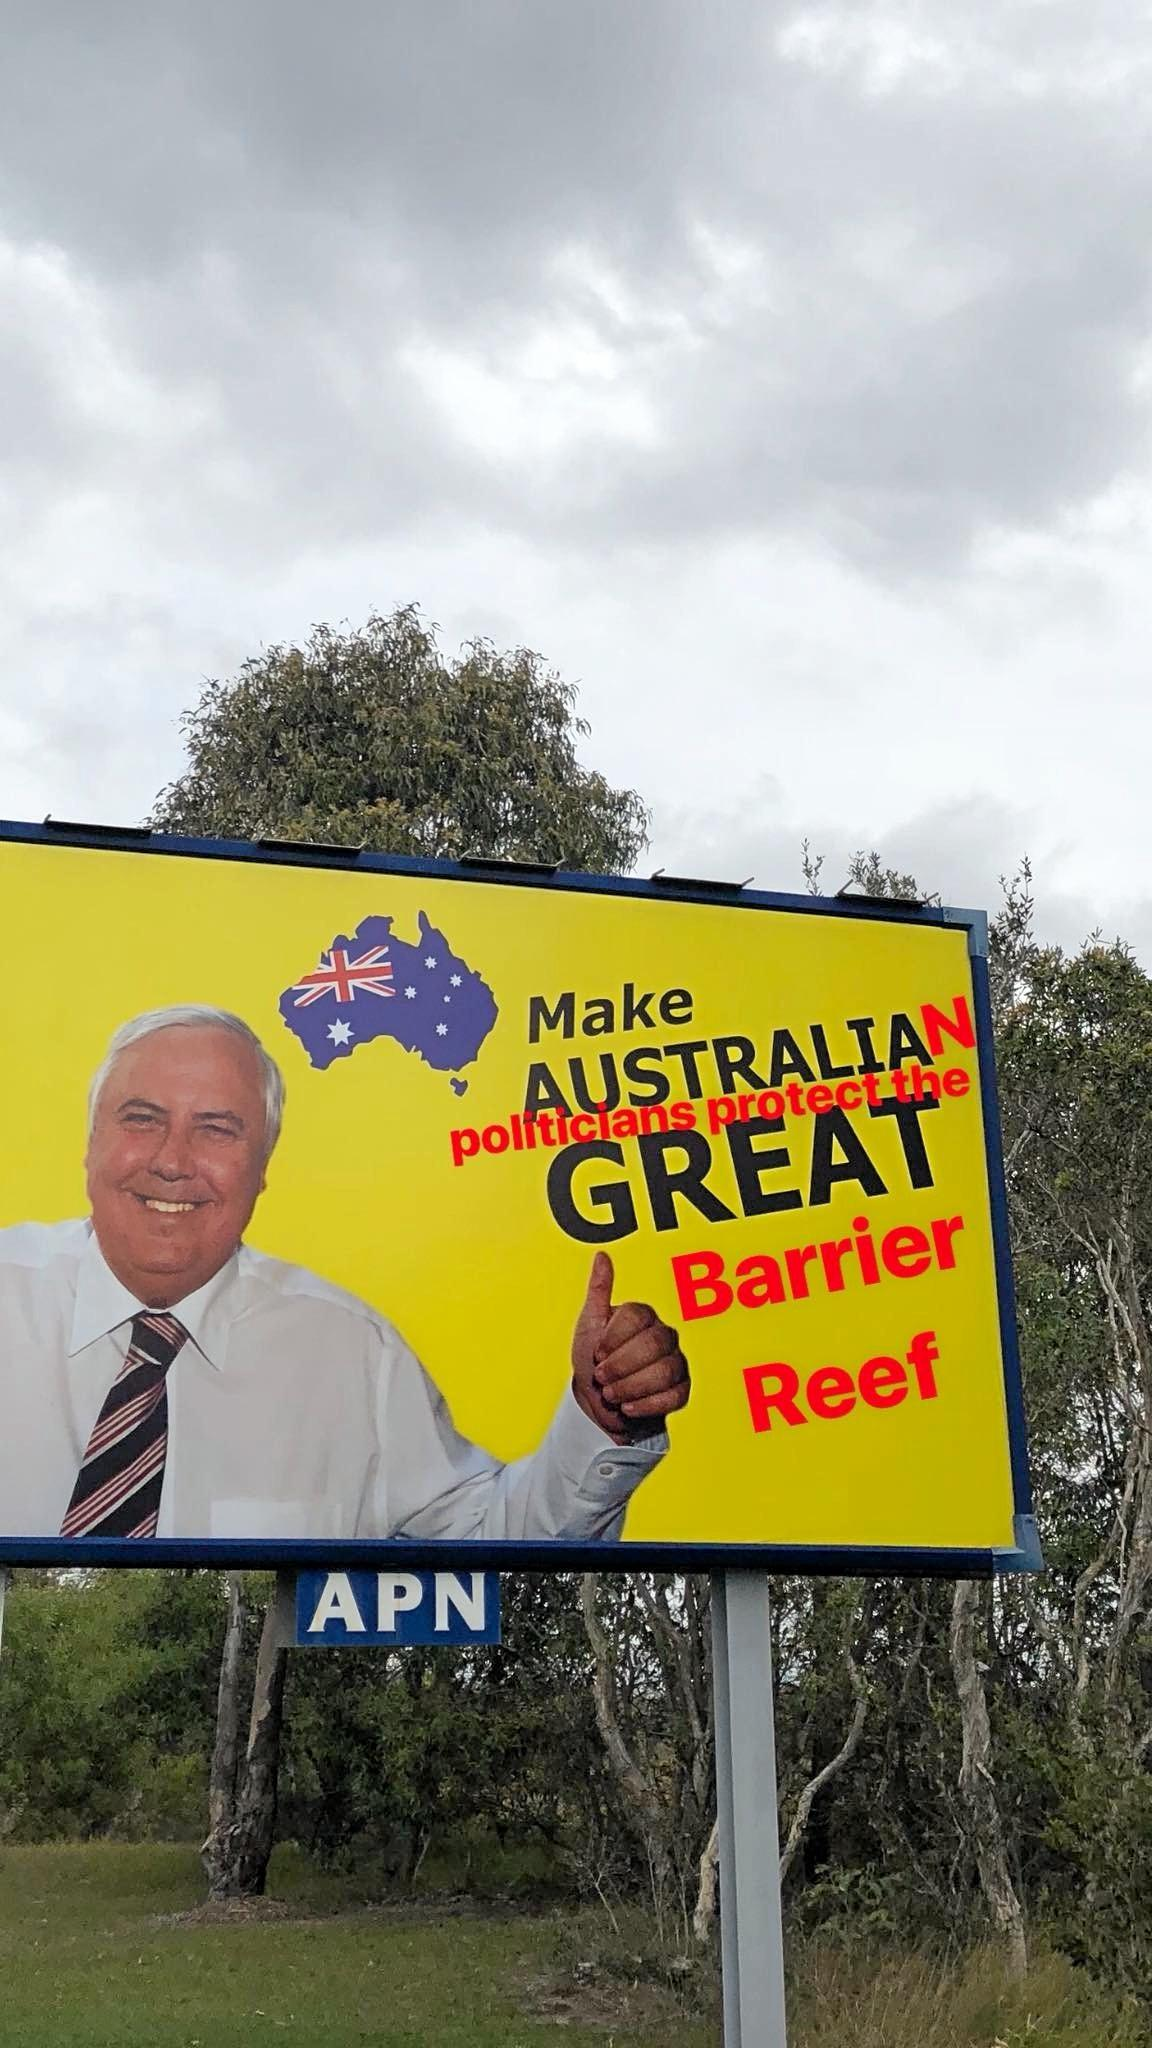 CLEVER photo-shopped re-messaging of Clive Palmer's 'Make Australia Great' billboards that began appearing around Australia last week, have been a quick hit on social media.